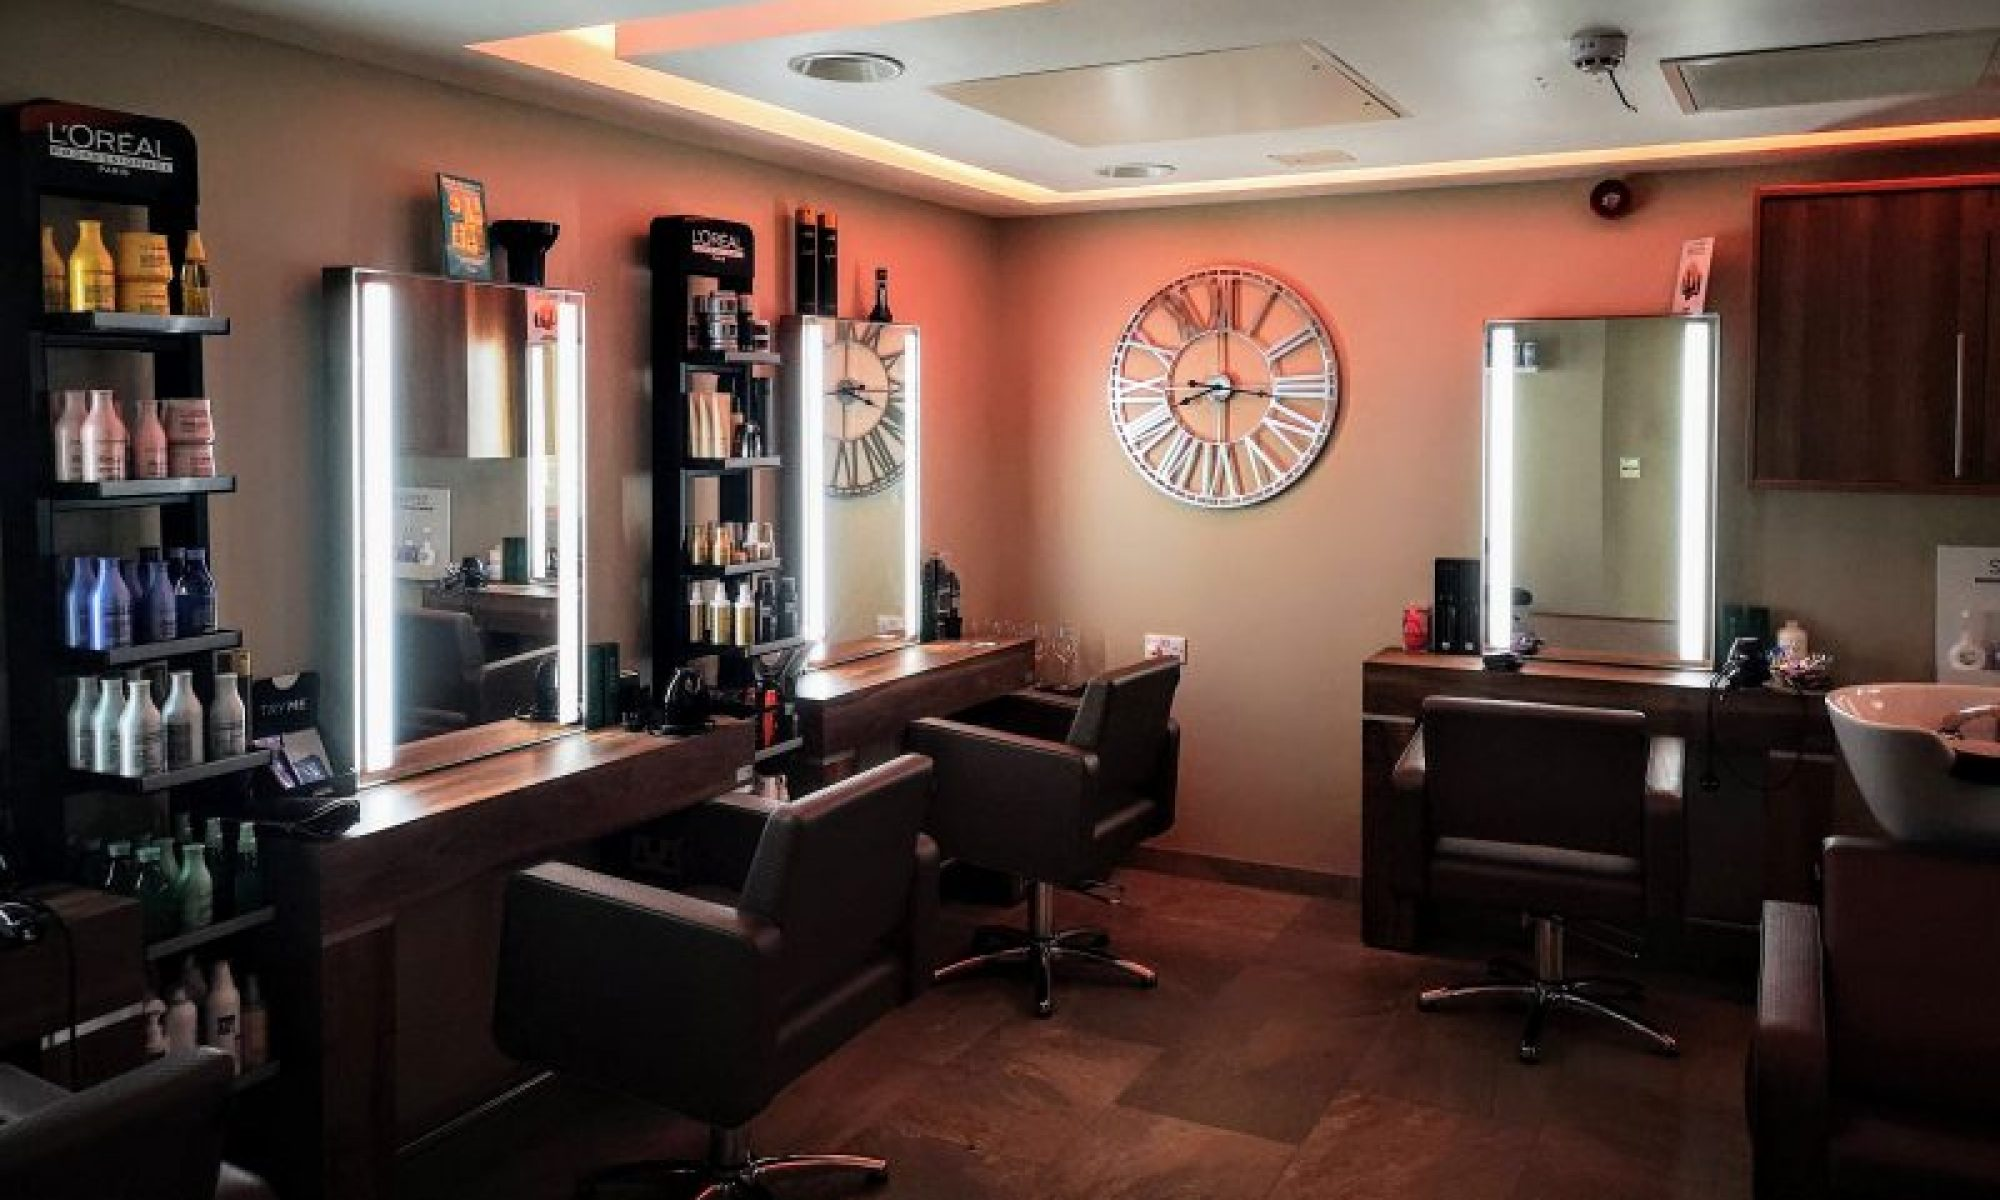 Hairdressing Salon Hair Salon At Finlake Hairdressing Salon Ideal For Newton Abbot